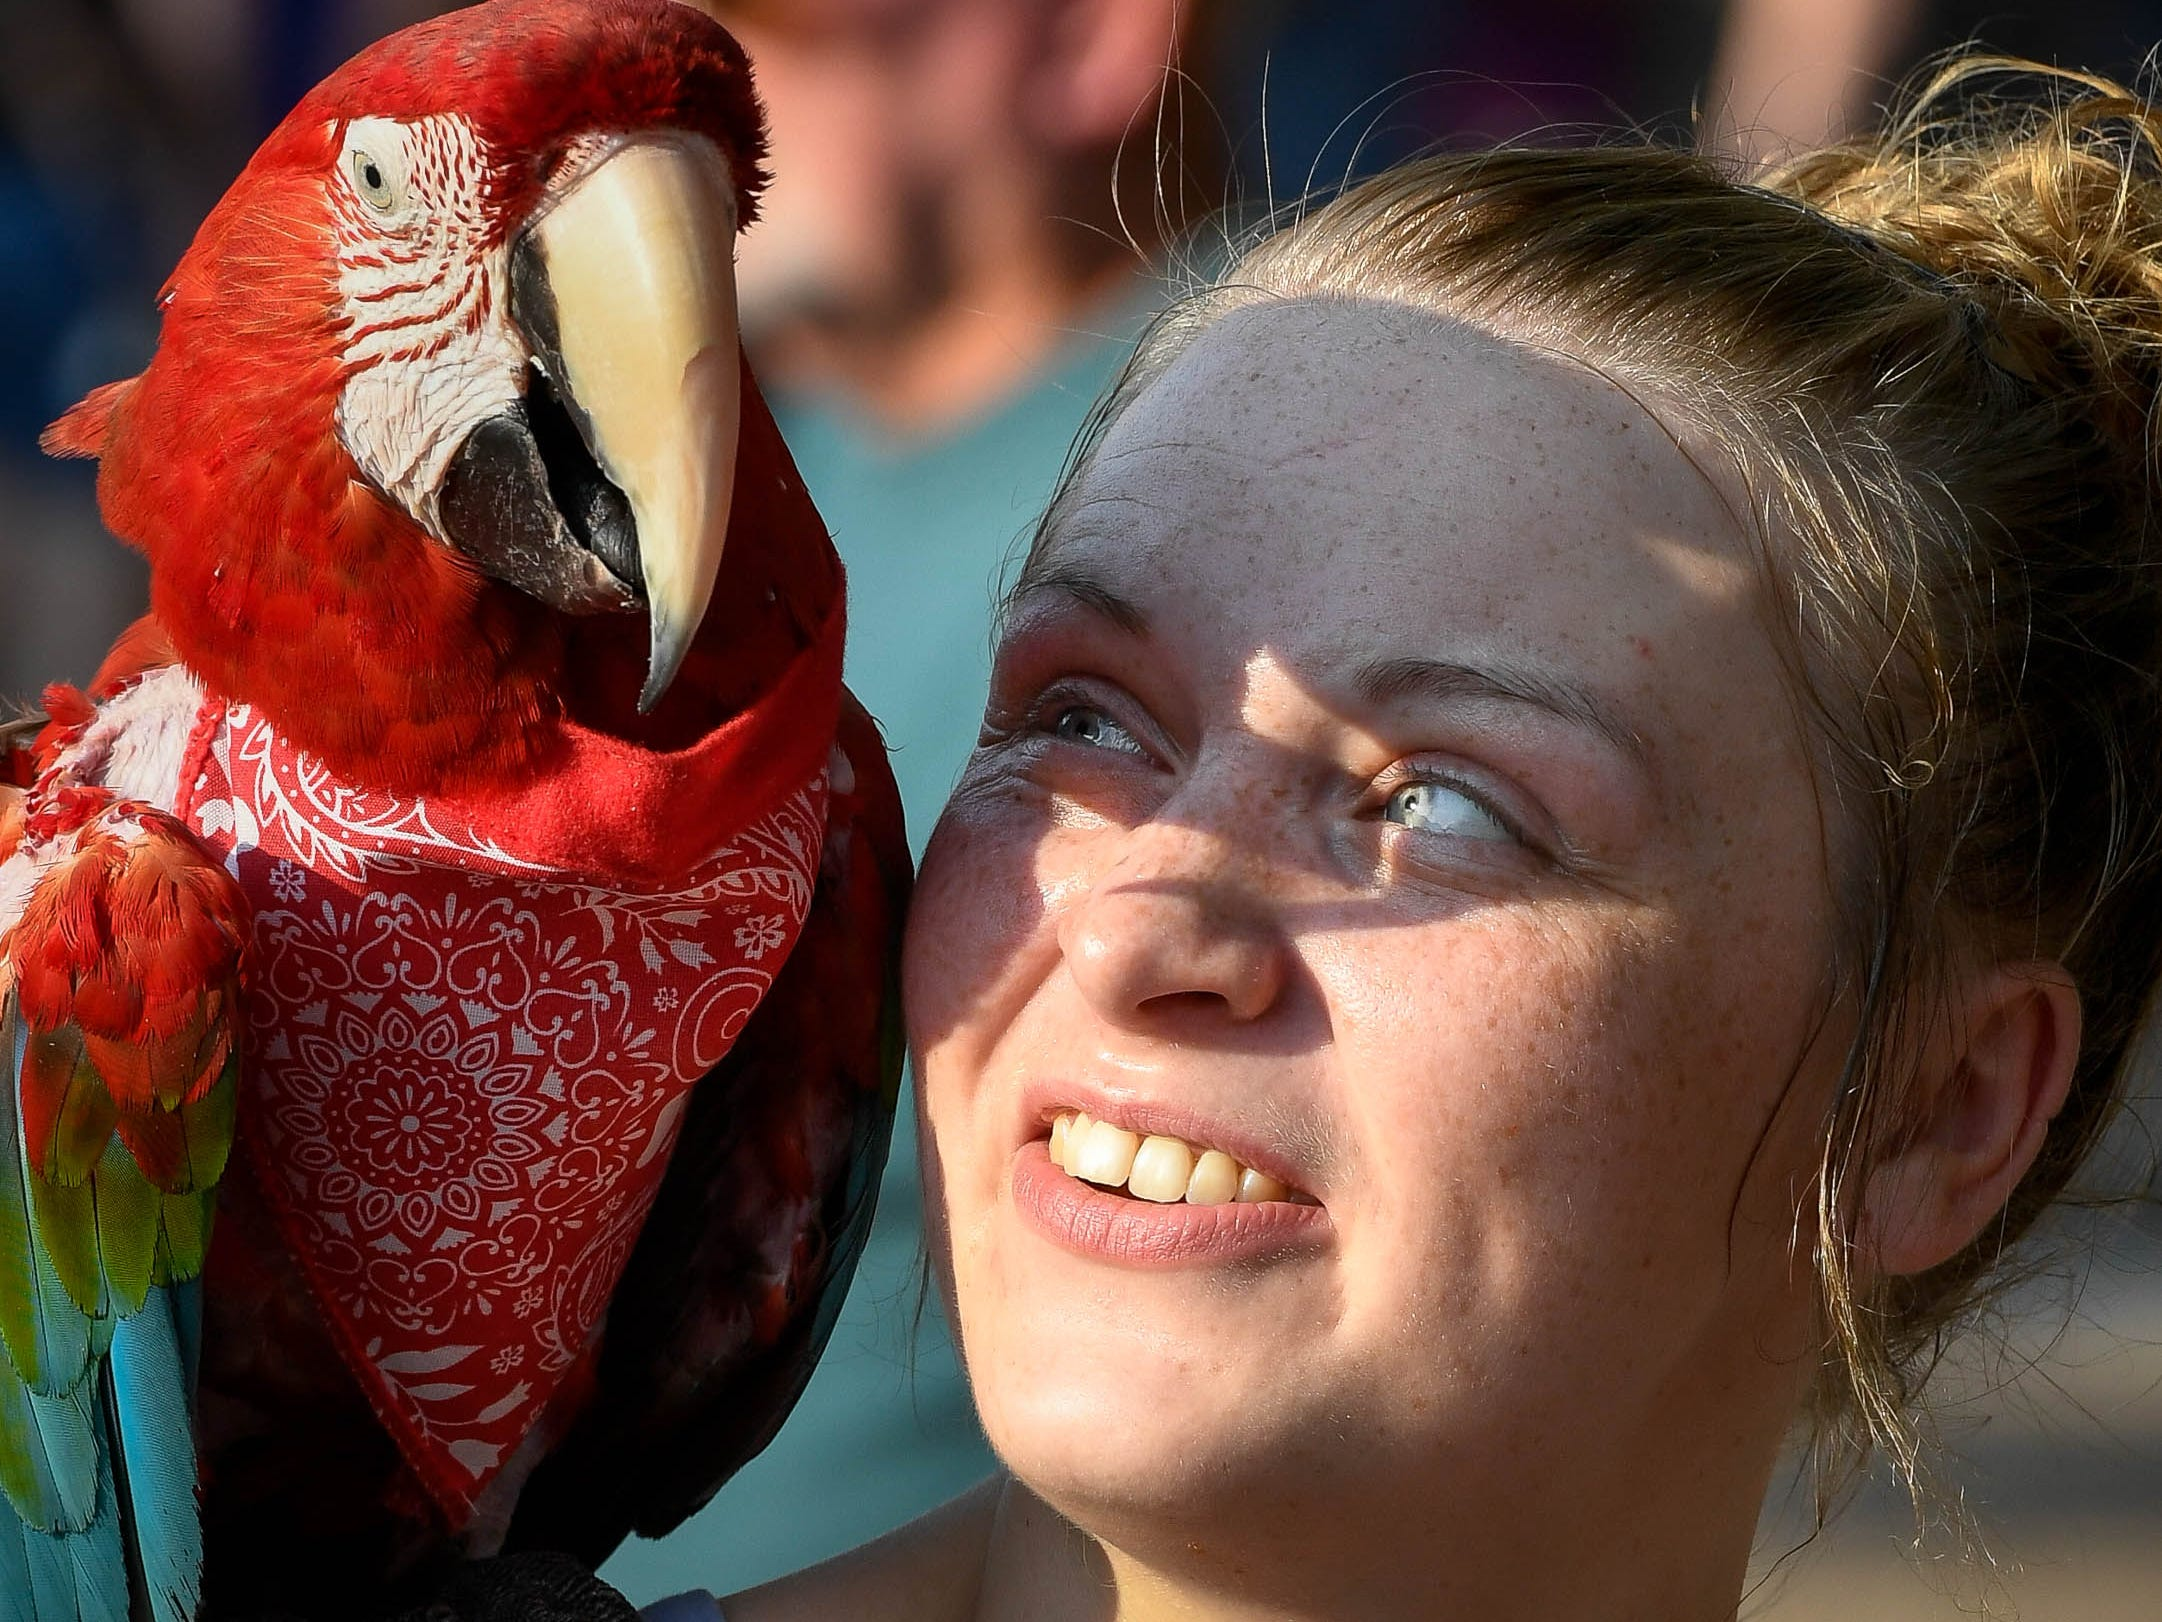 Chelsea Moore makes friends with Barron a scarlet macaw at the Haynie's Corner First Friday event in the downtown Arts District Friday, August 3, 2018.